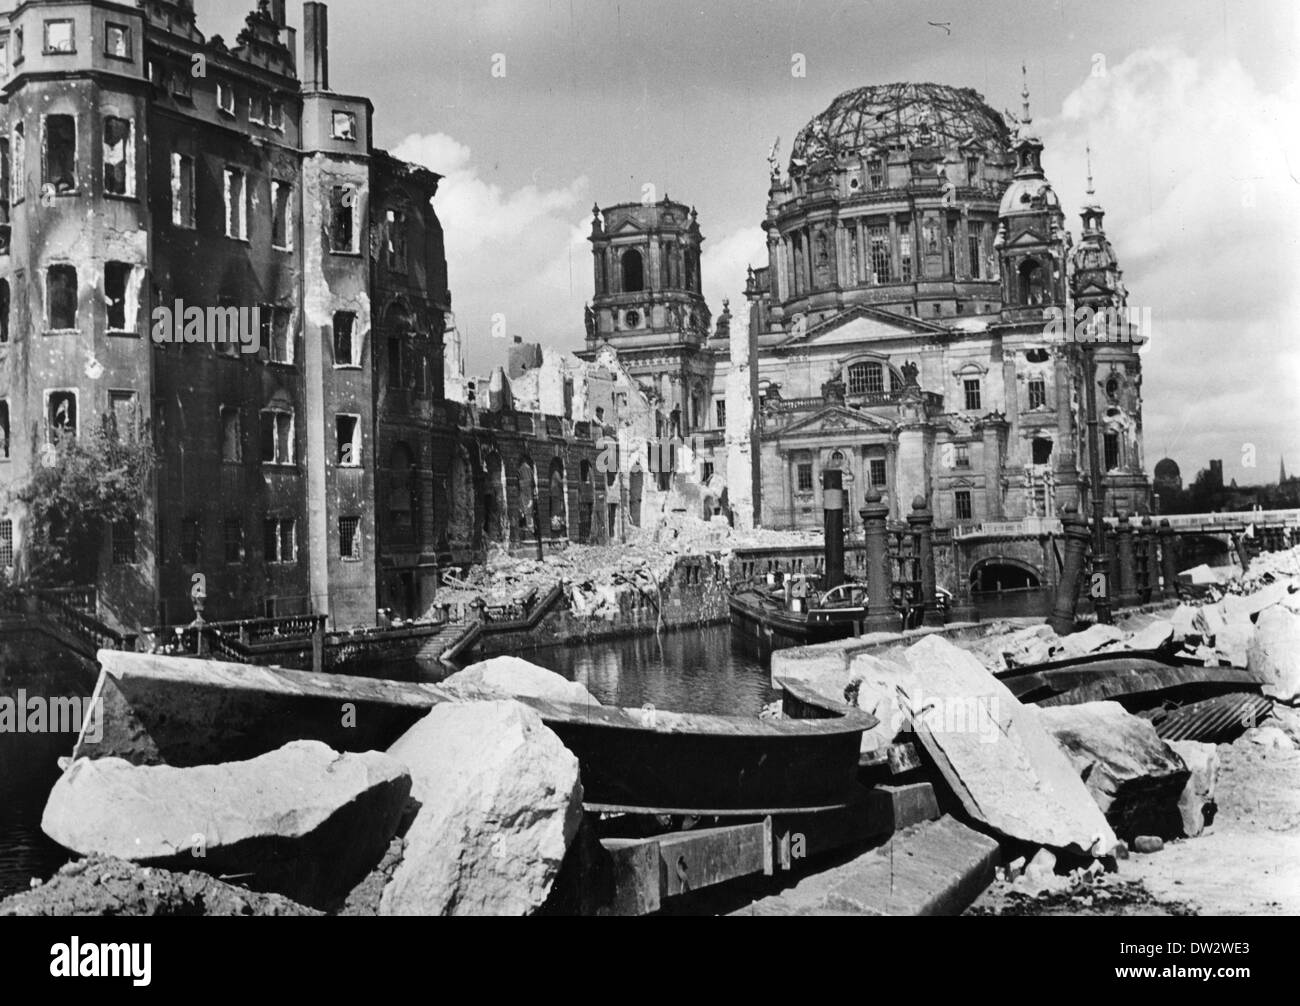 End of the war in Berlin 1945 - View of the destroyed city of Berlin with the Berlin Dome and one part of the ruined castle (L). Photo: Berliner Verlag / Archive - NO WIRE SERVICE - Stock Image